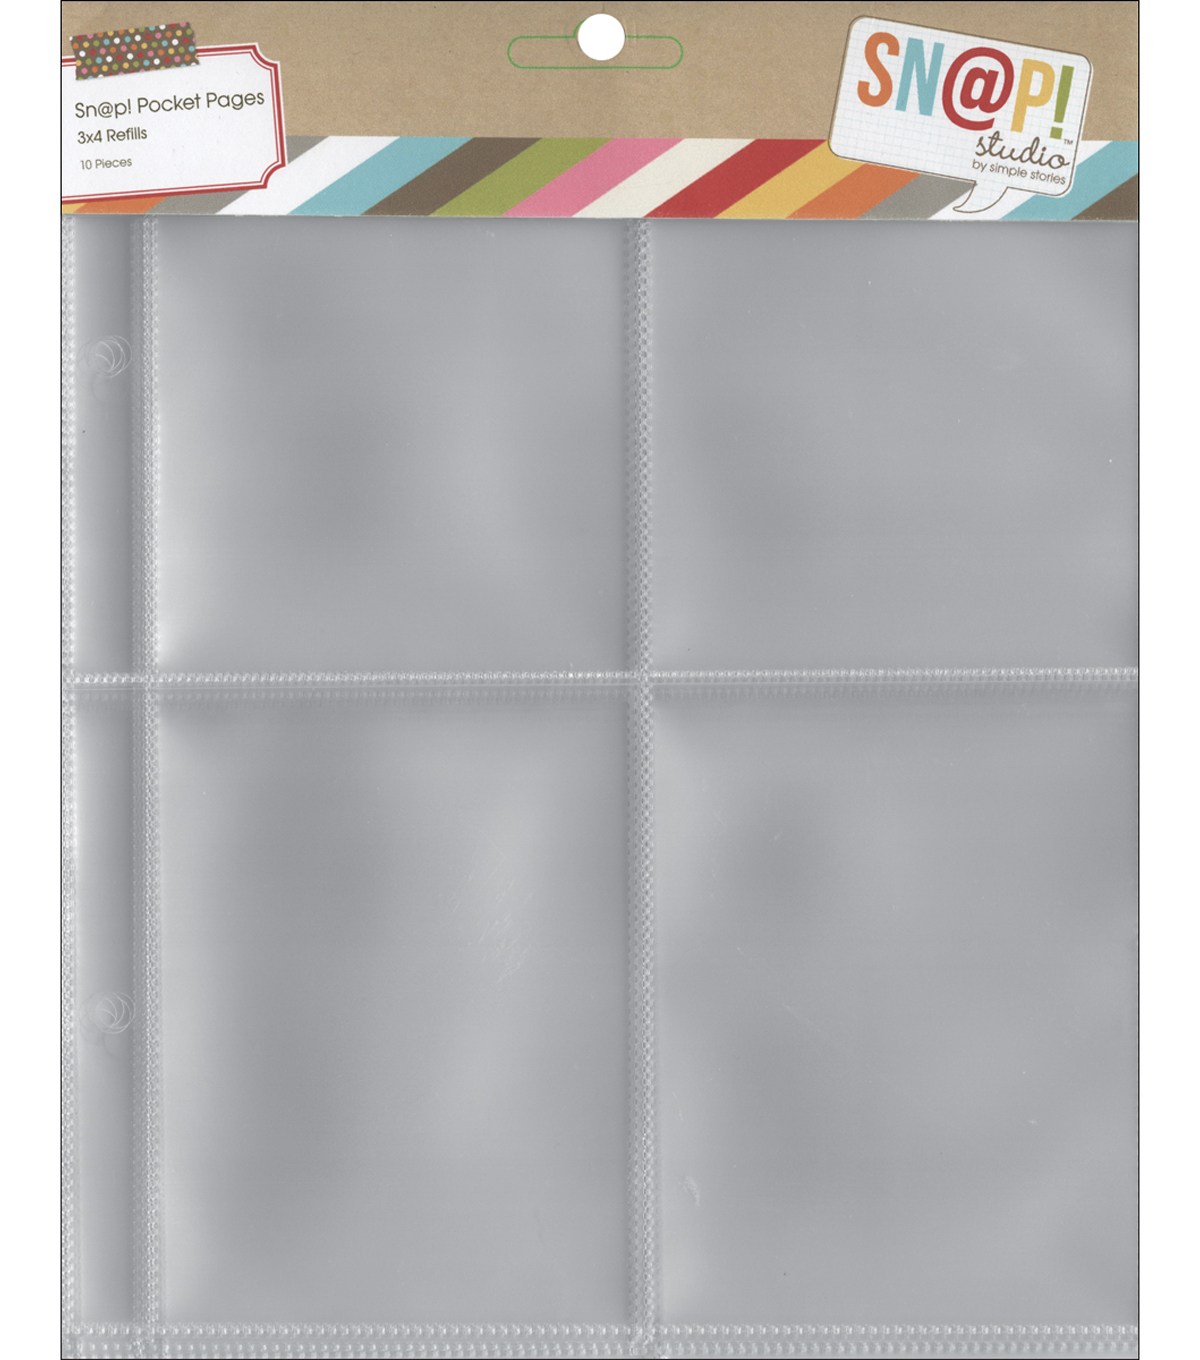 Sn@p! Pocket Pages For 6\u0022X8\u0022 Binders-(4) 3\u0022X4\u0022 Pockets